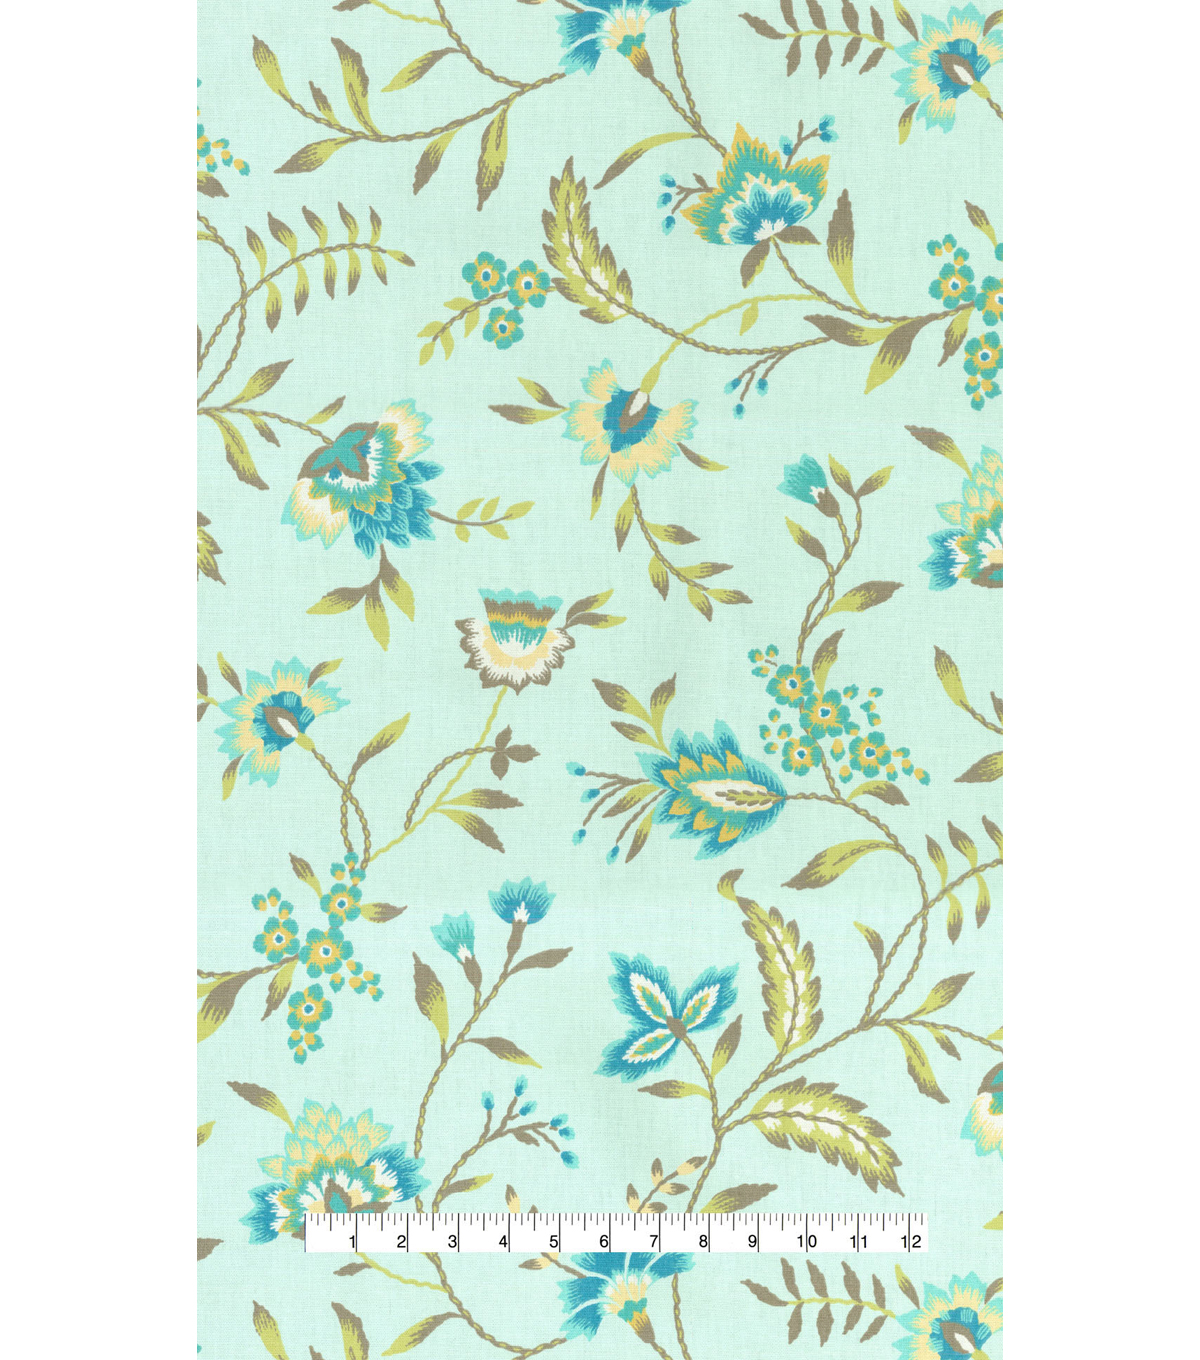 Waverly Upholstery Fabric 54\u0022-Carolina Crewel Mist